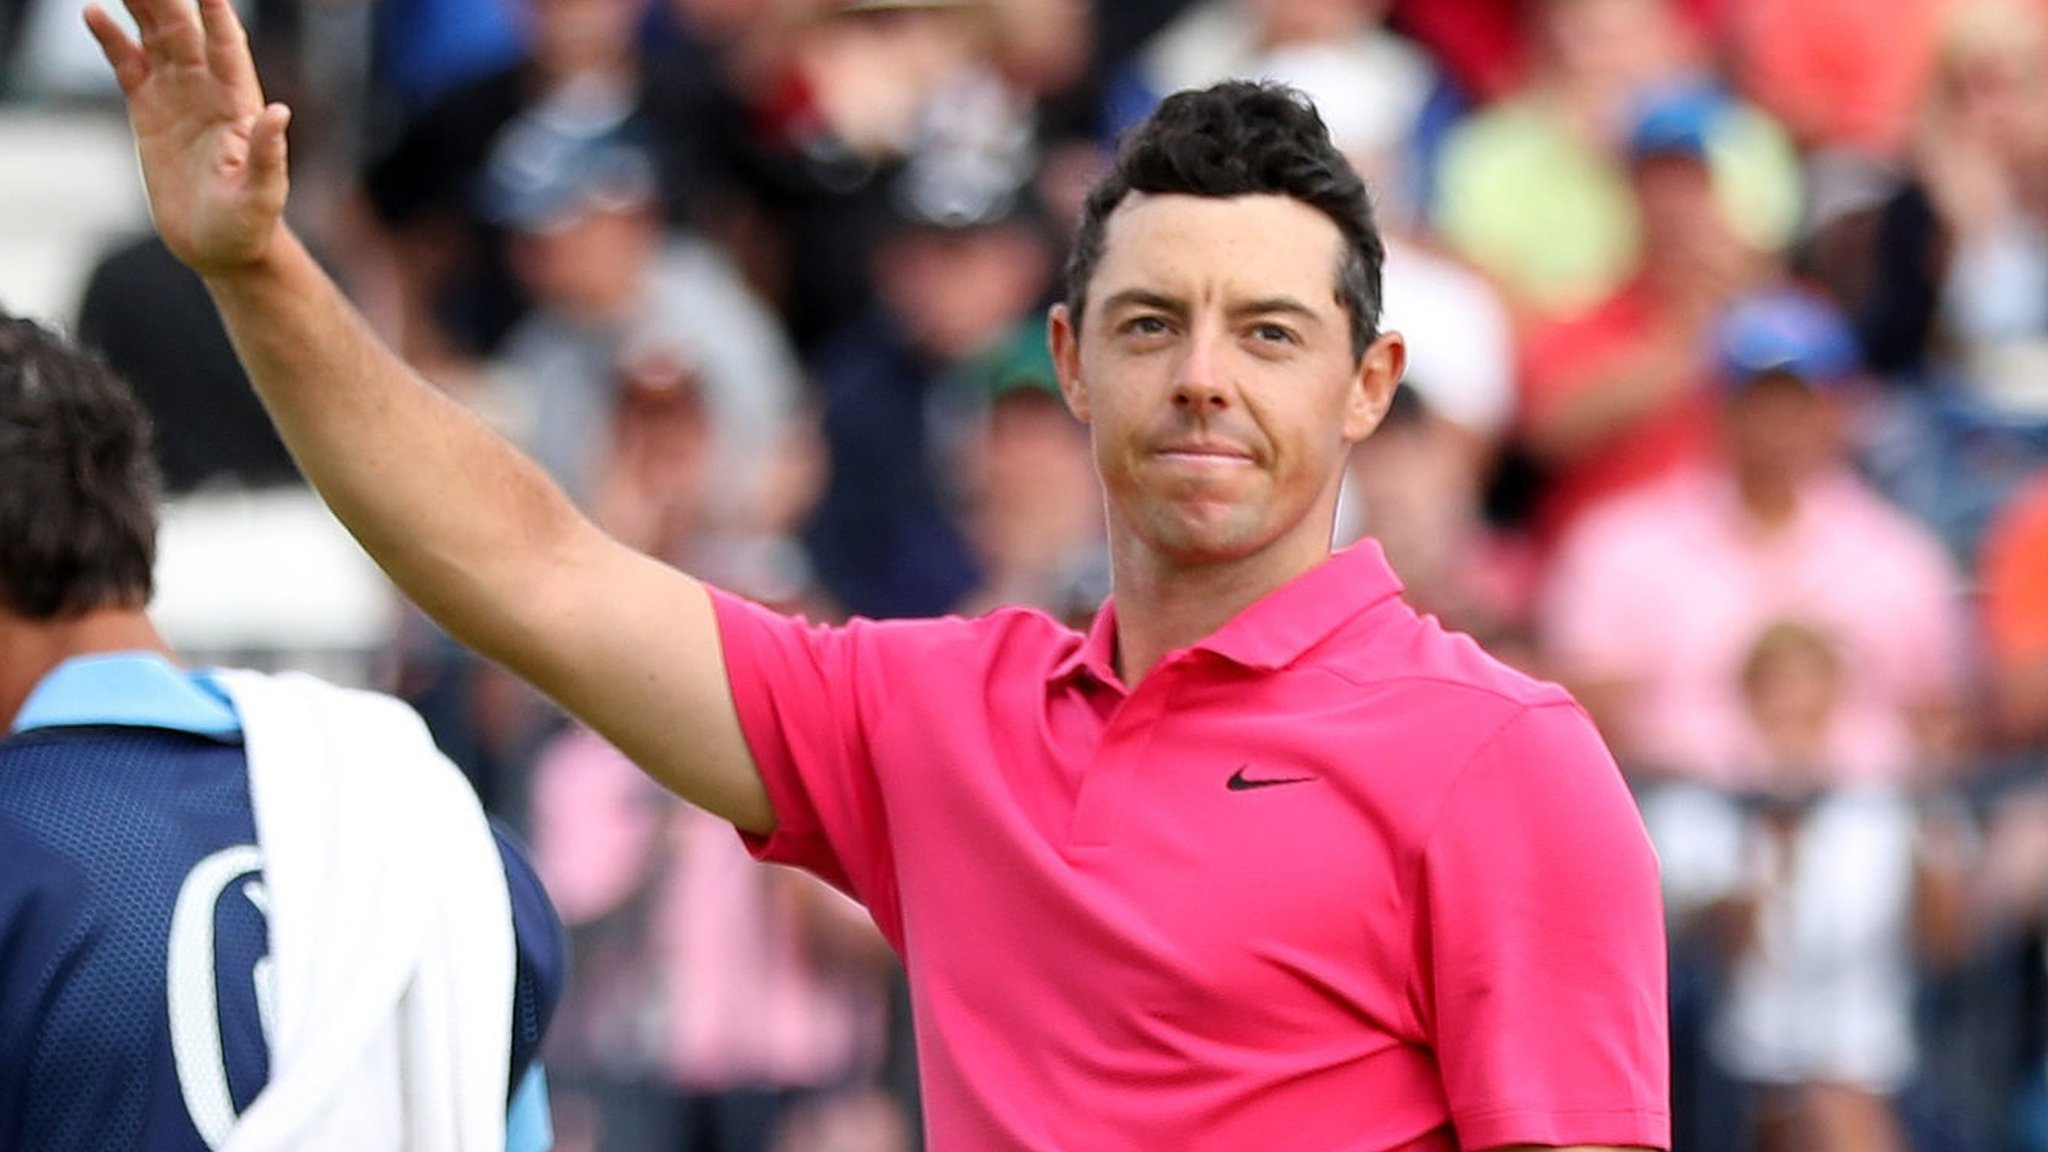 The Open 2018: Rory McIlroy has 'no regrets' after tie for second